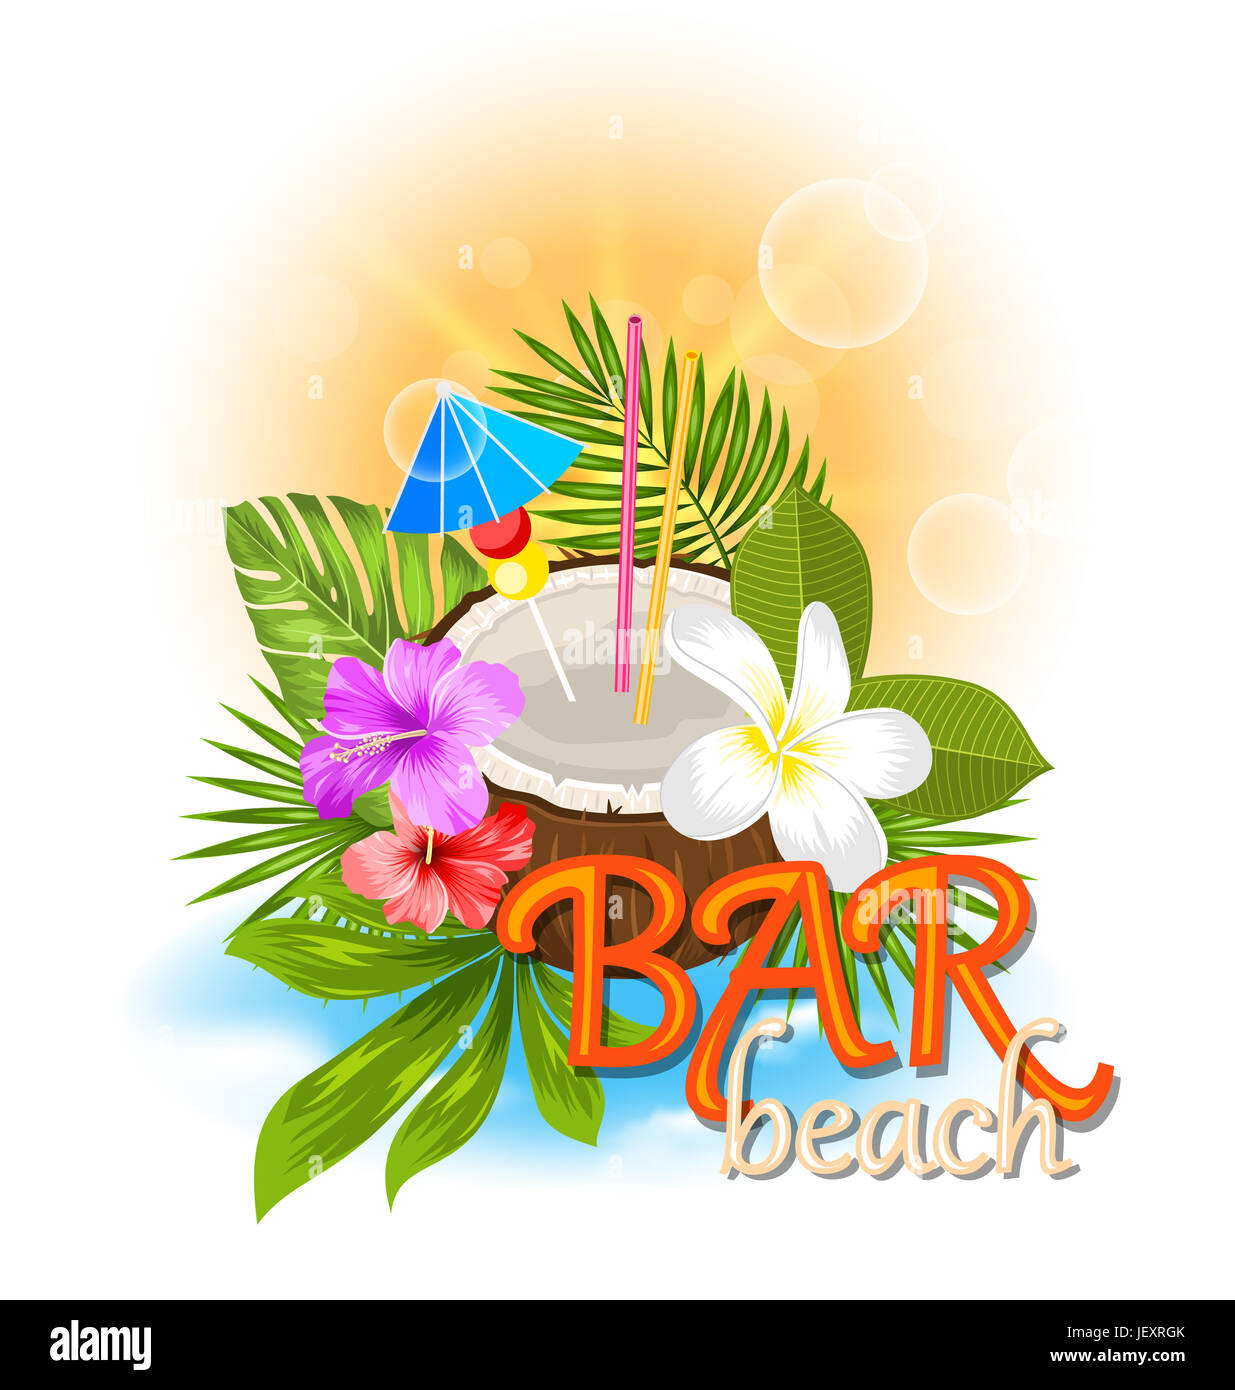 Illustration Beach Bar Background with Coconut Cocktail and Exotic Flowers and Leaves - - Stock Image